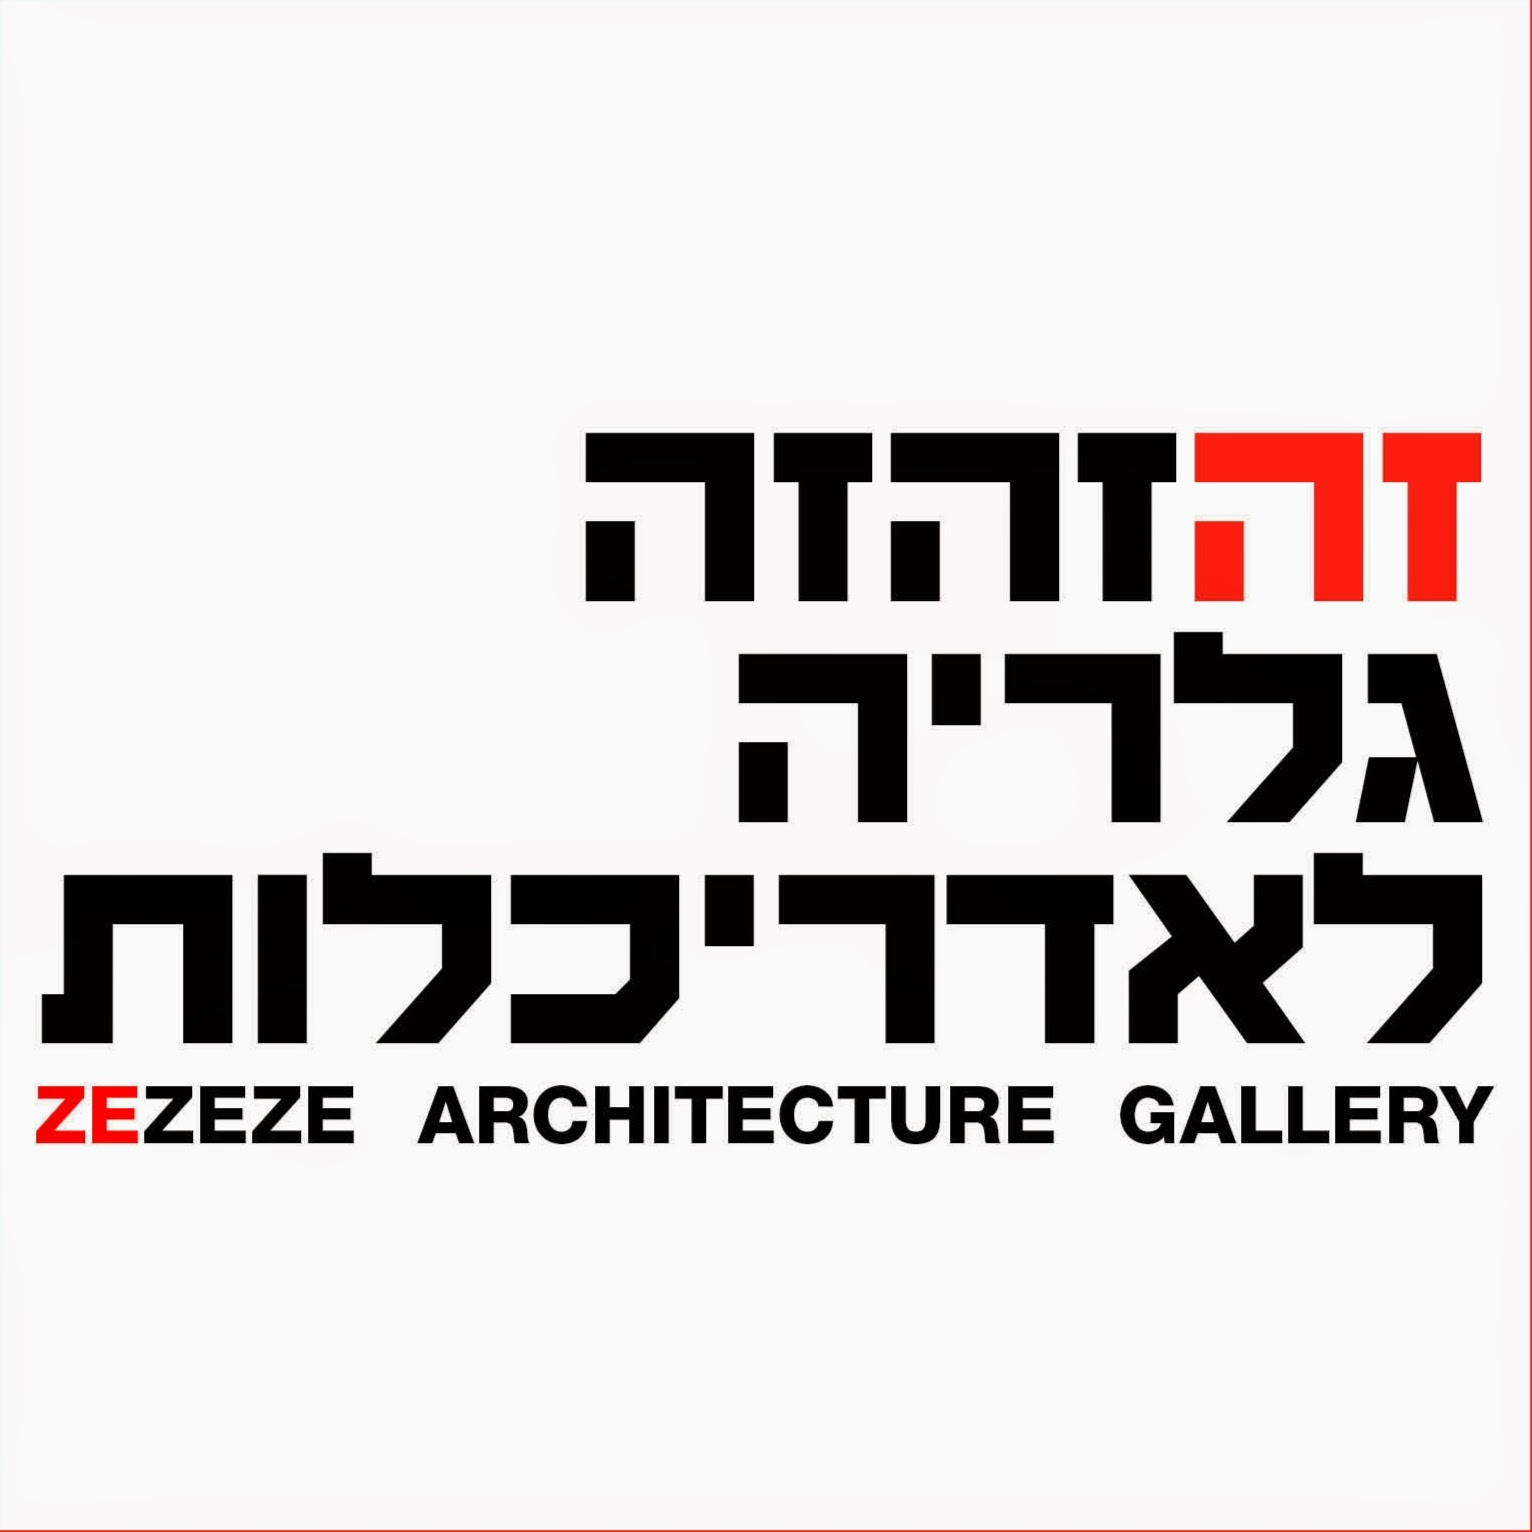 ZEZEZE Gallery for Architecture